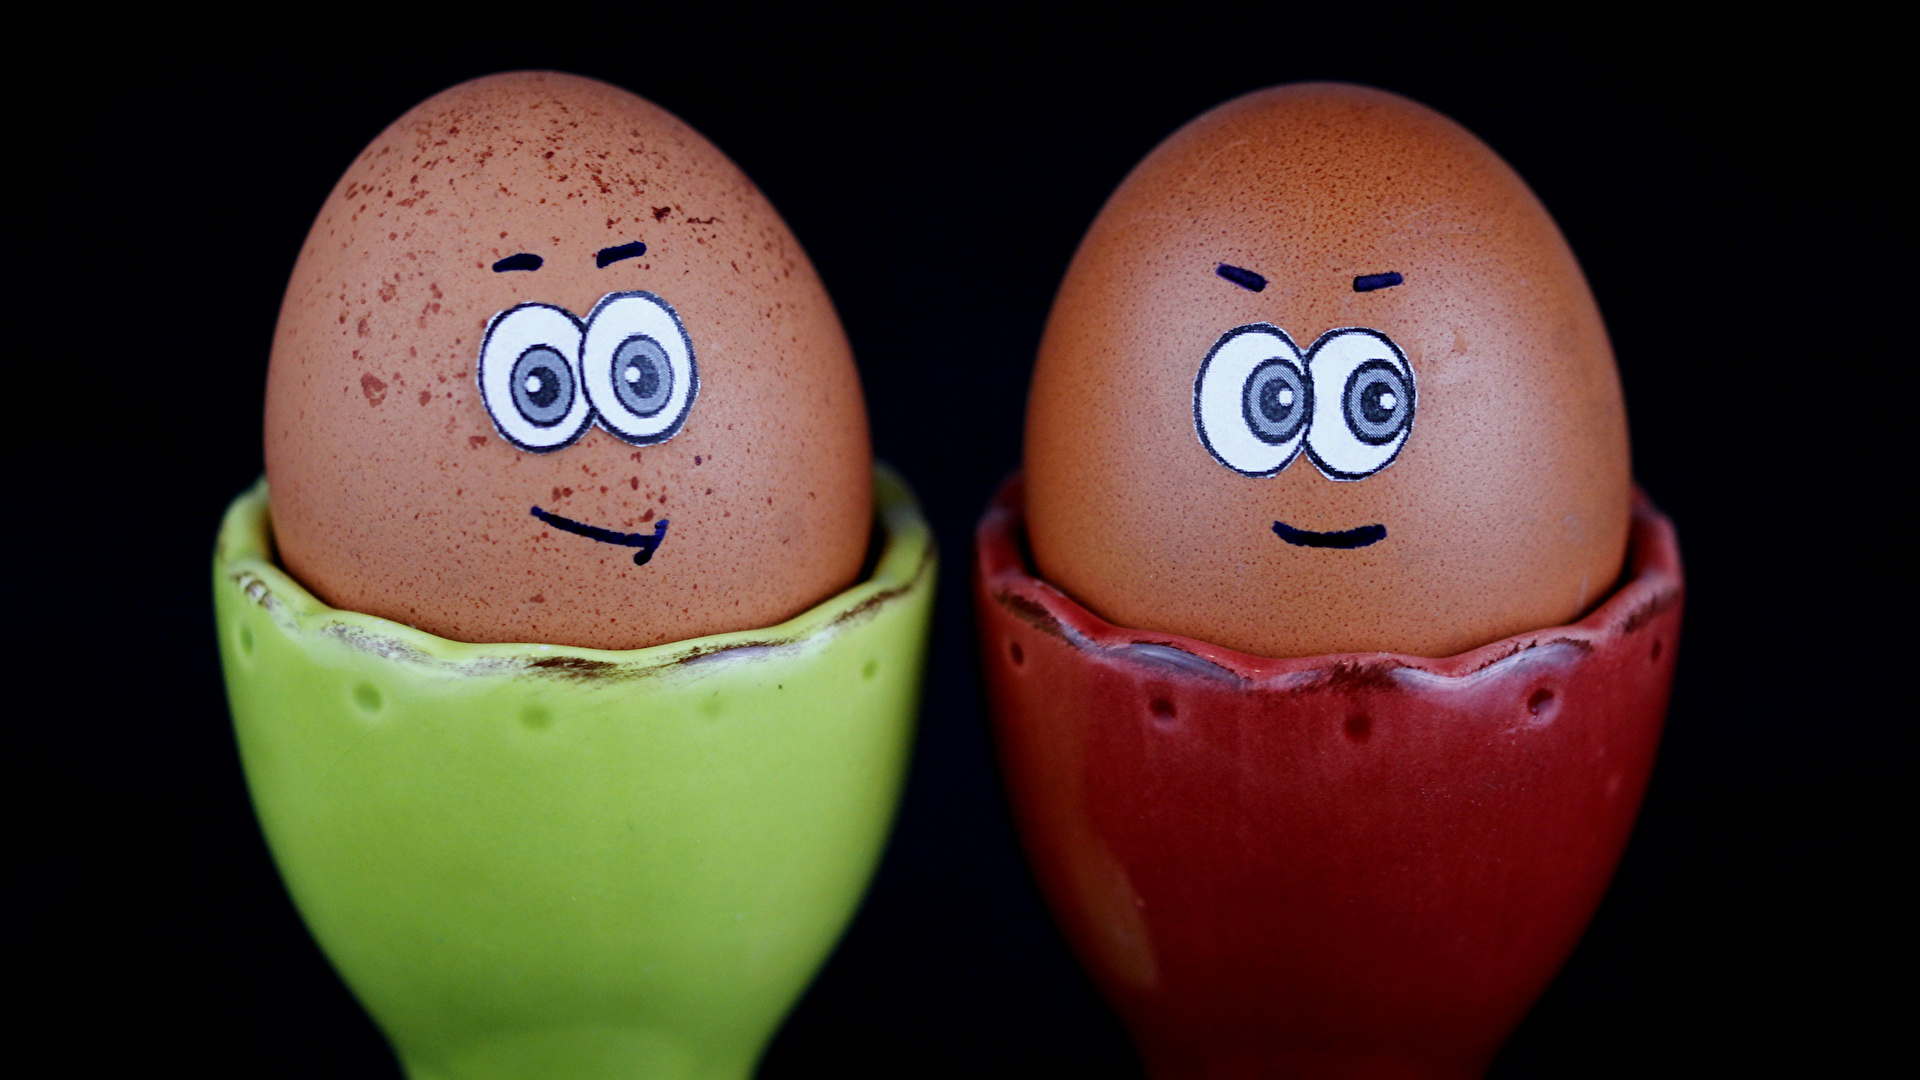 Images Smilies Egg Two Creative Food Black Background 1920x1080